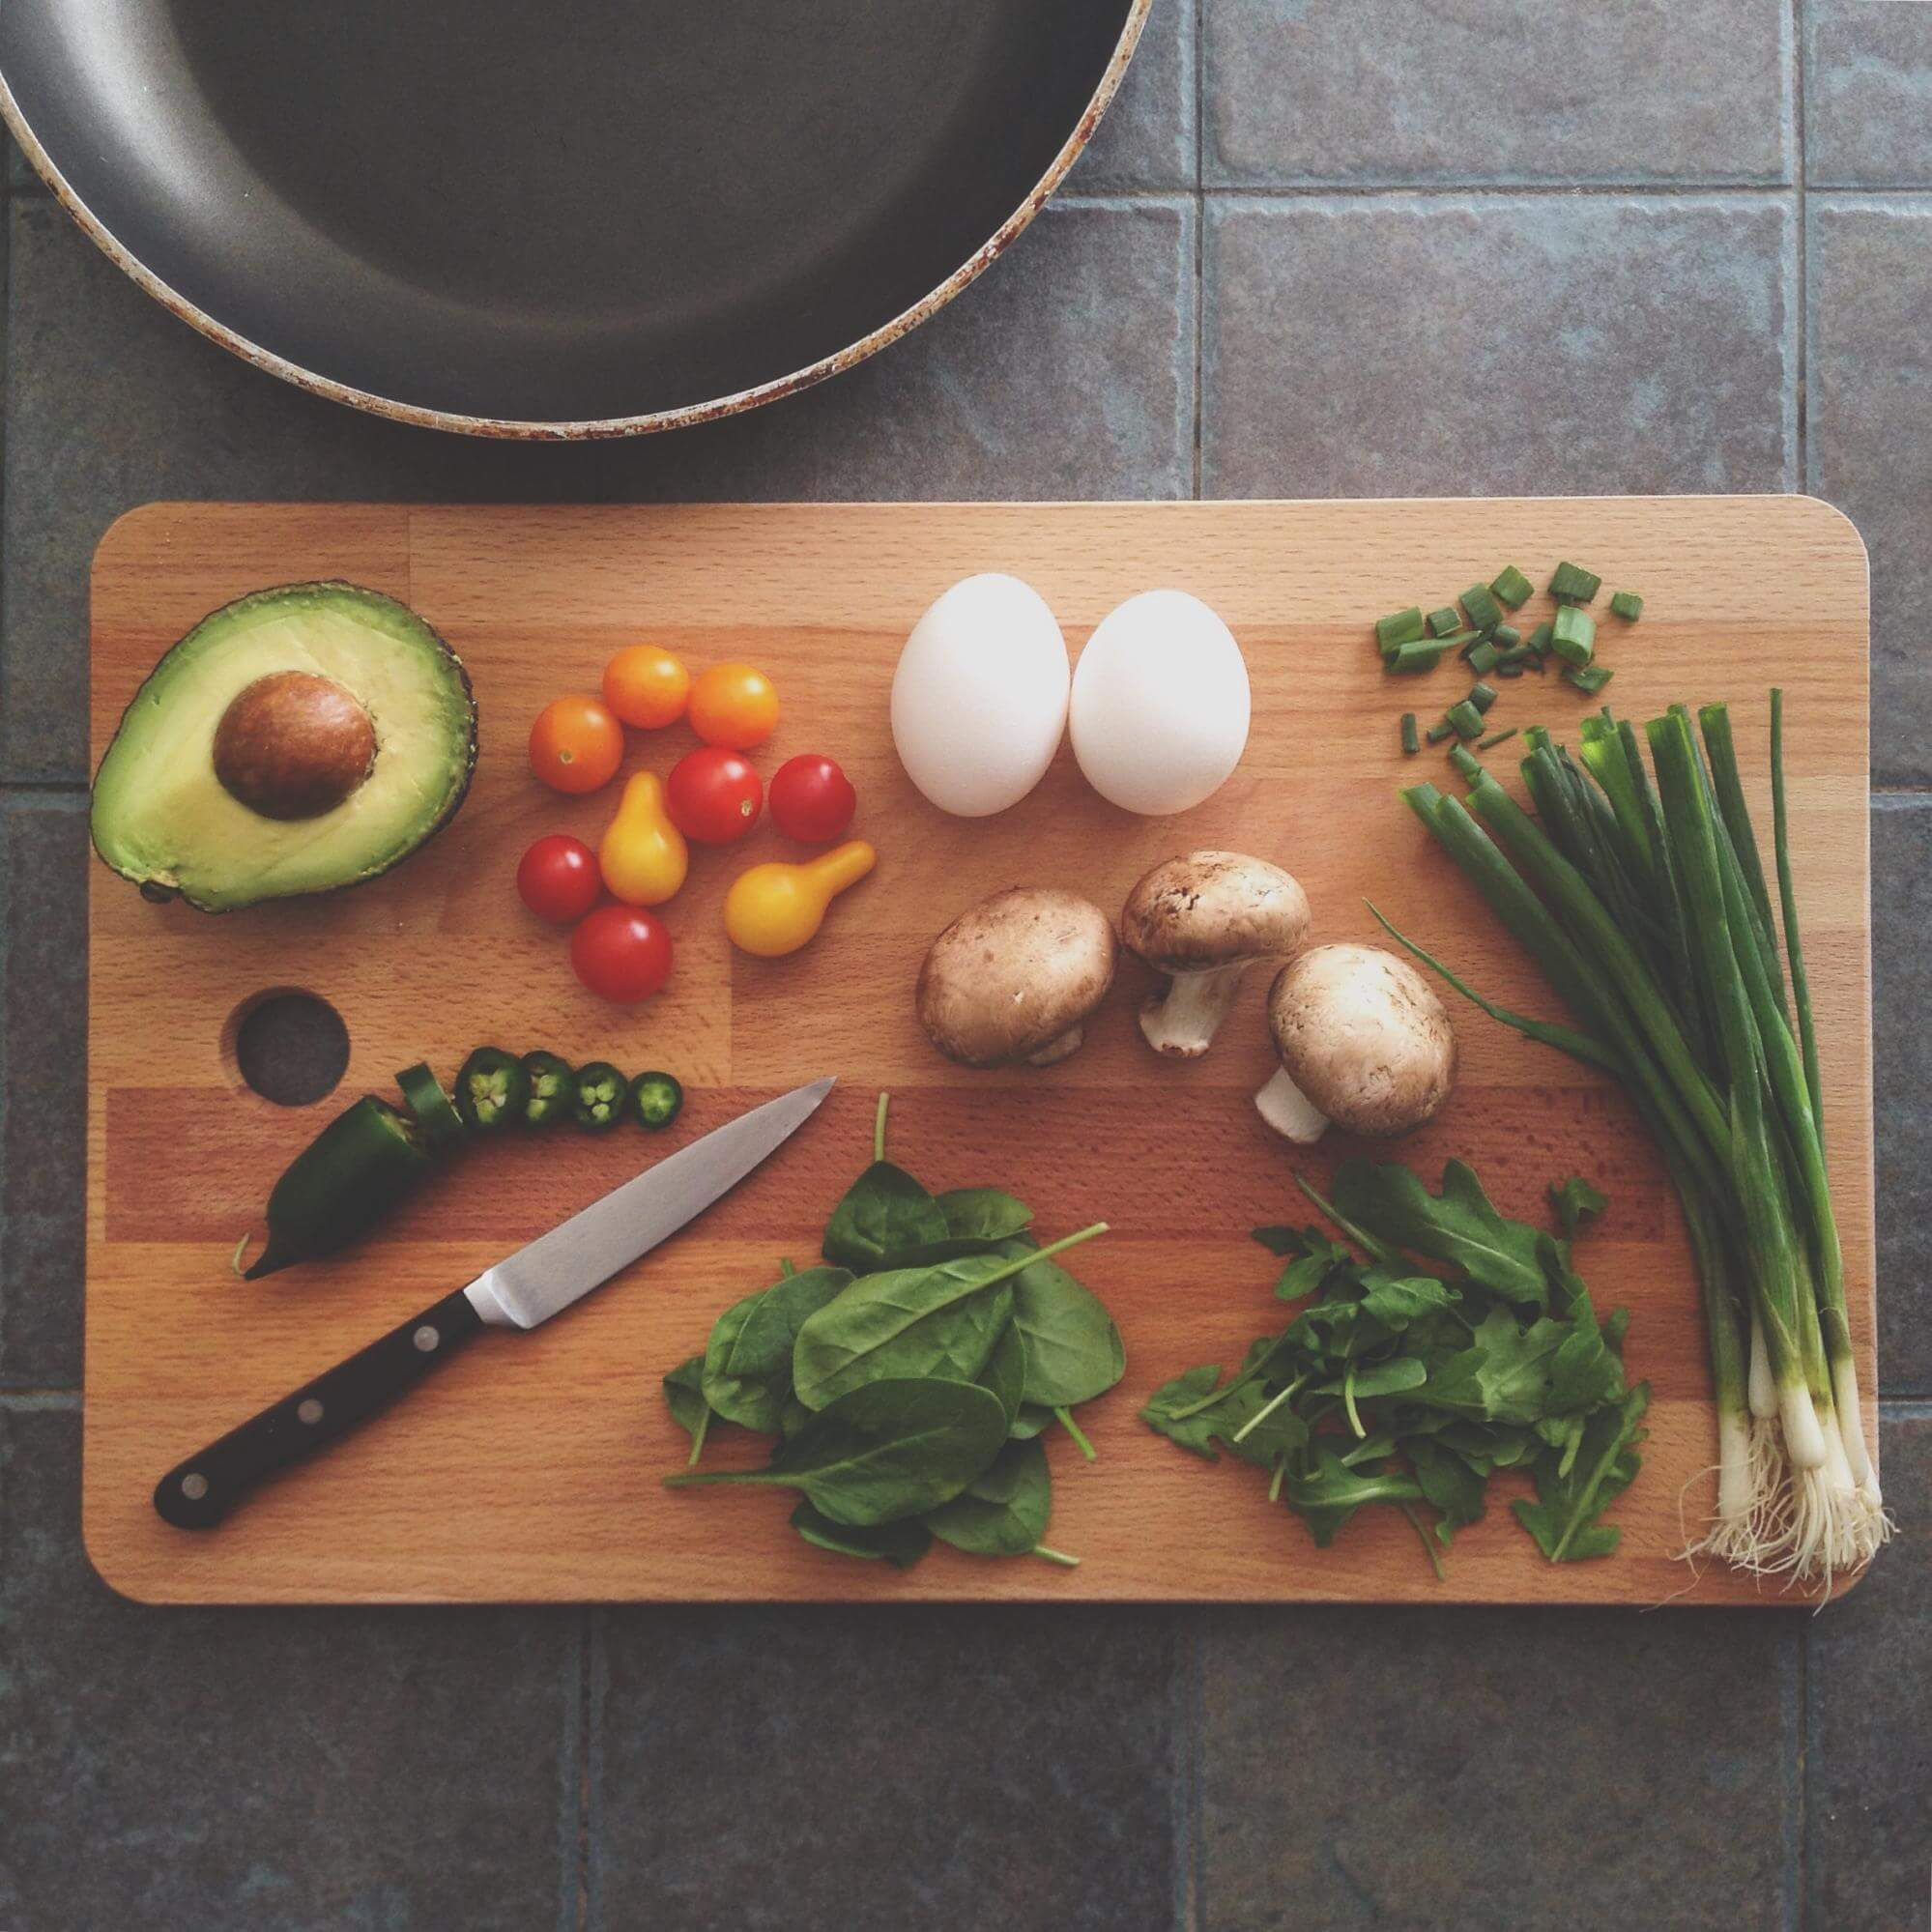 simple ingredients placed on a cutting board